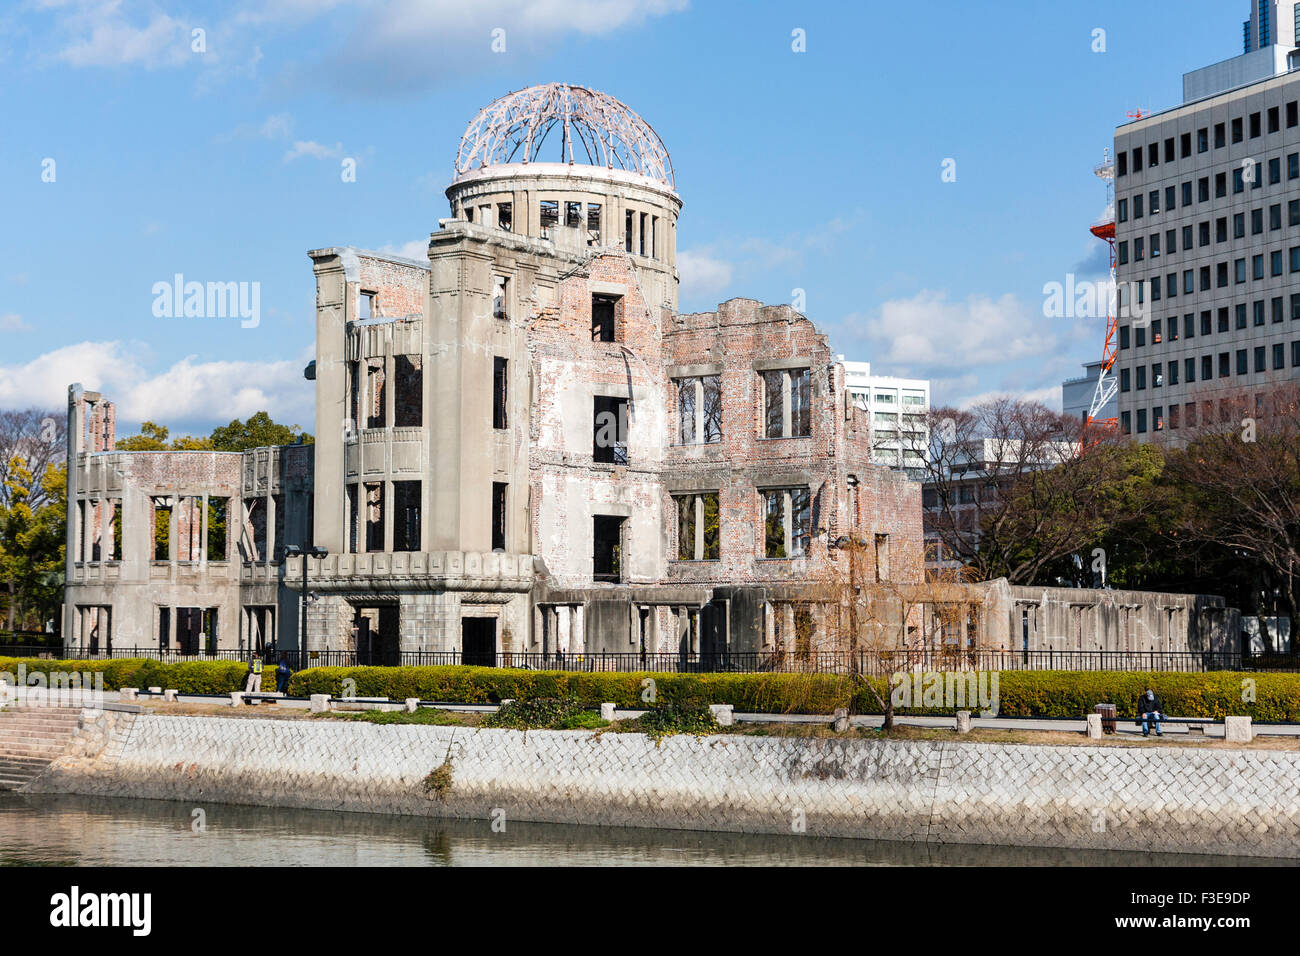 Hiroshima, Japan, A-bomb dome, ruined building near ground zero, sunlight and blue skies, winter time - Stock Image